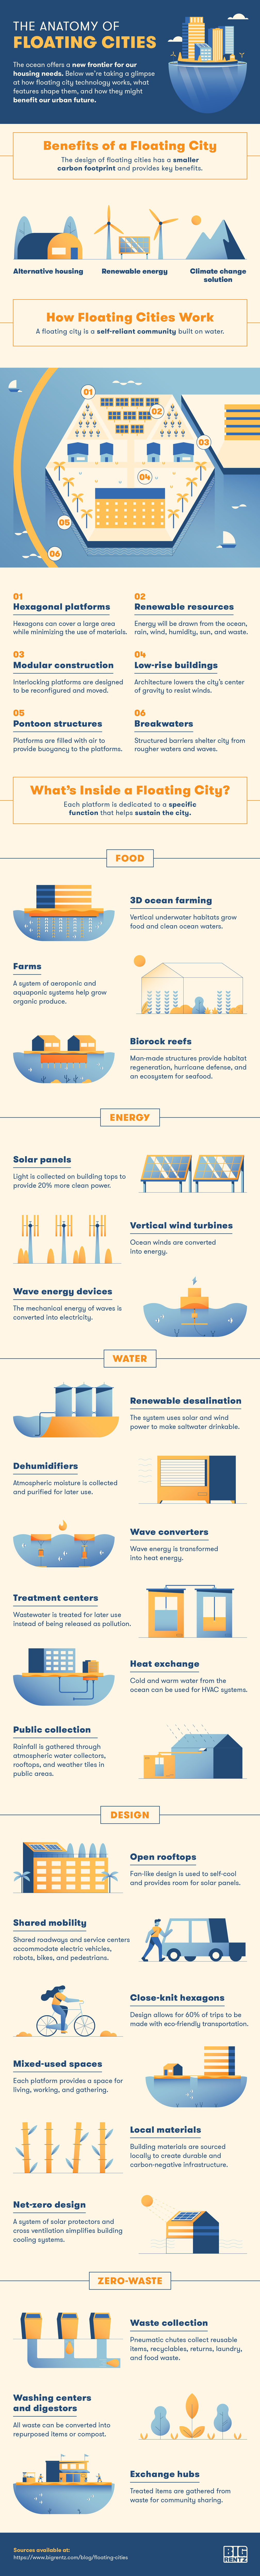 Infographic showing the benefits of floating cities, how floating cities work, and what's inside a floating city.